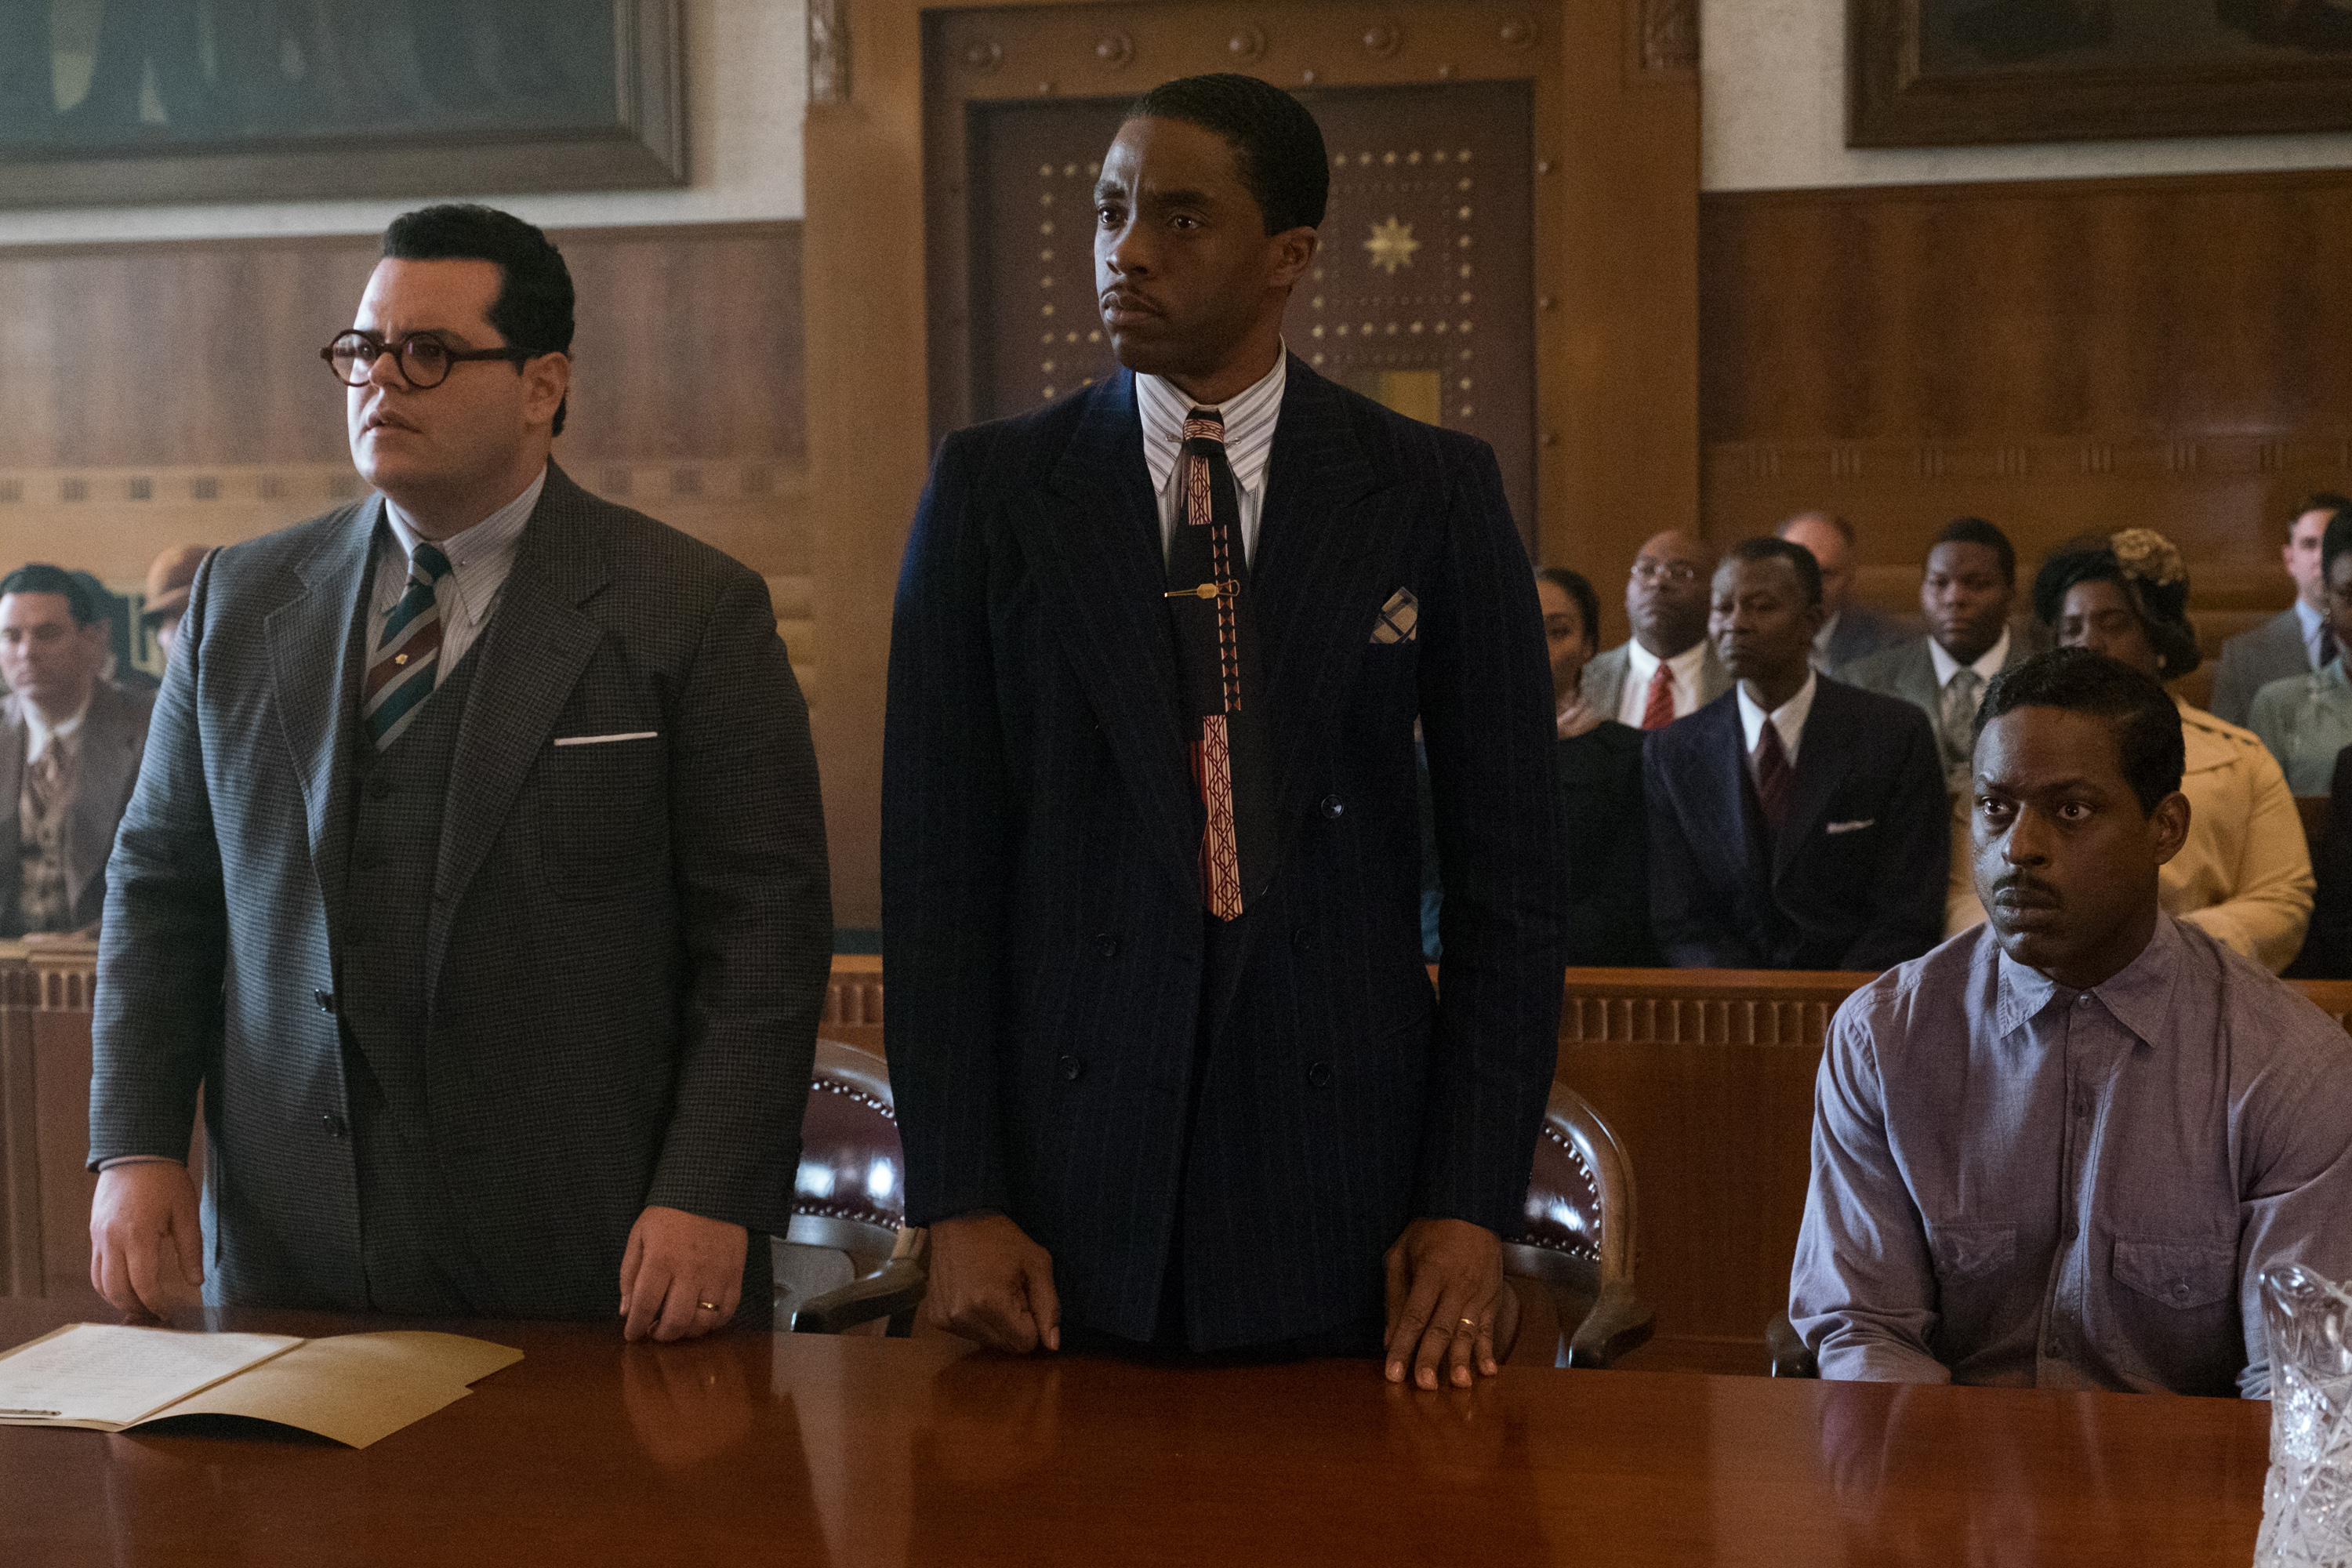 'Marshall' Movie Trailer: Chadwick Boseman Stars as Thurgood Marshall